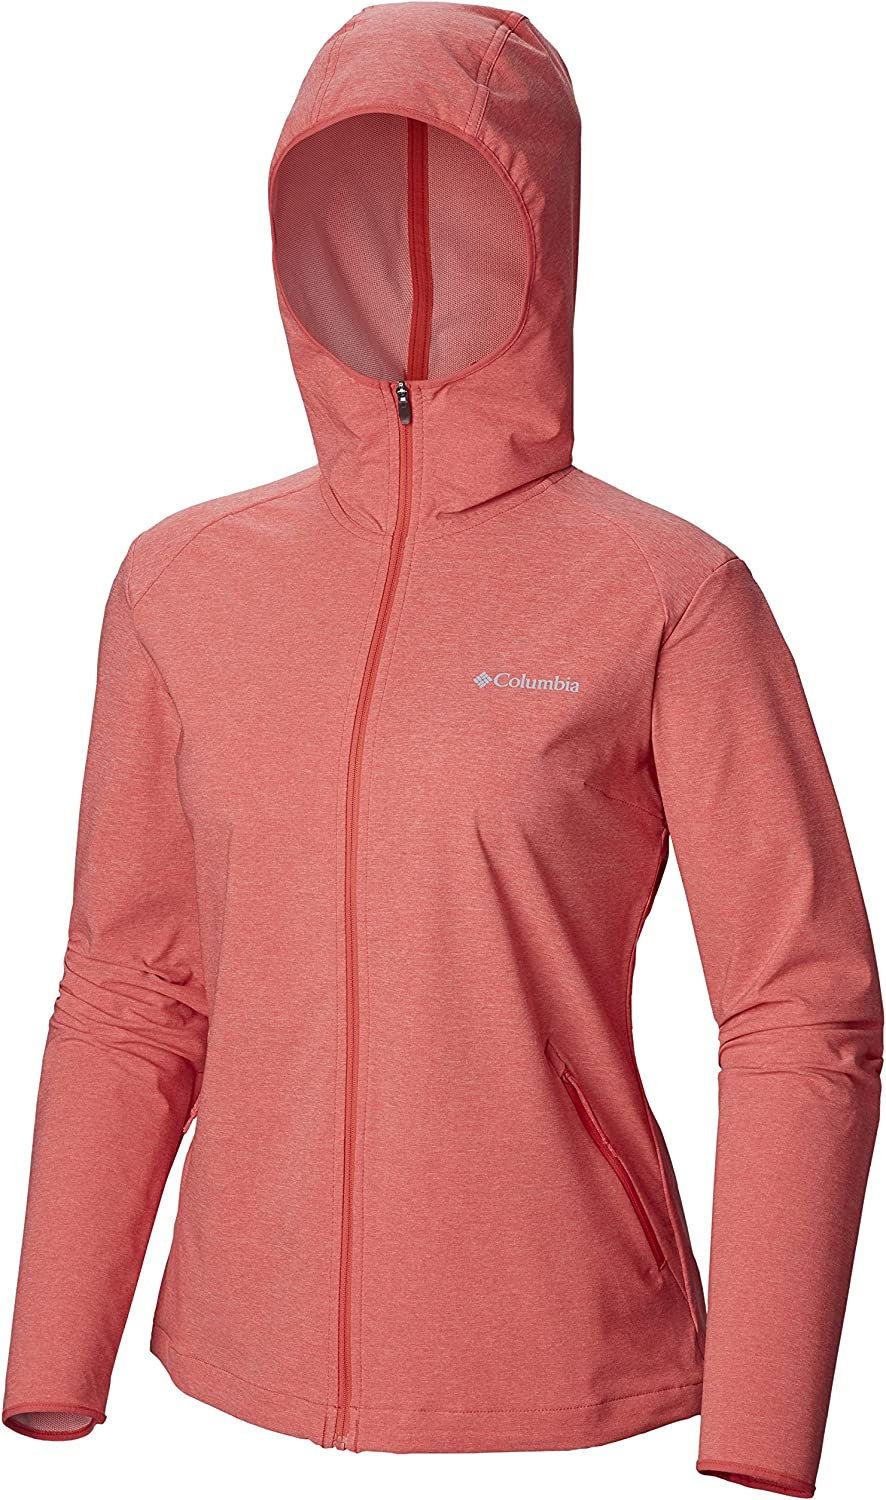 Columbia Heather Canyon Softshell Veste Femme